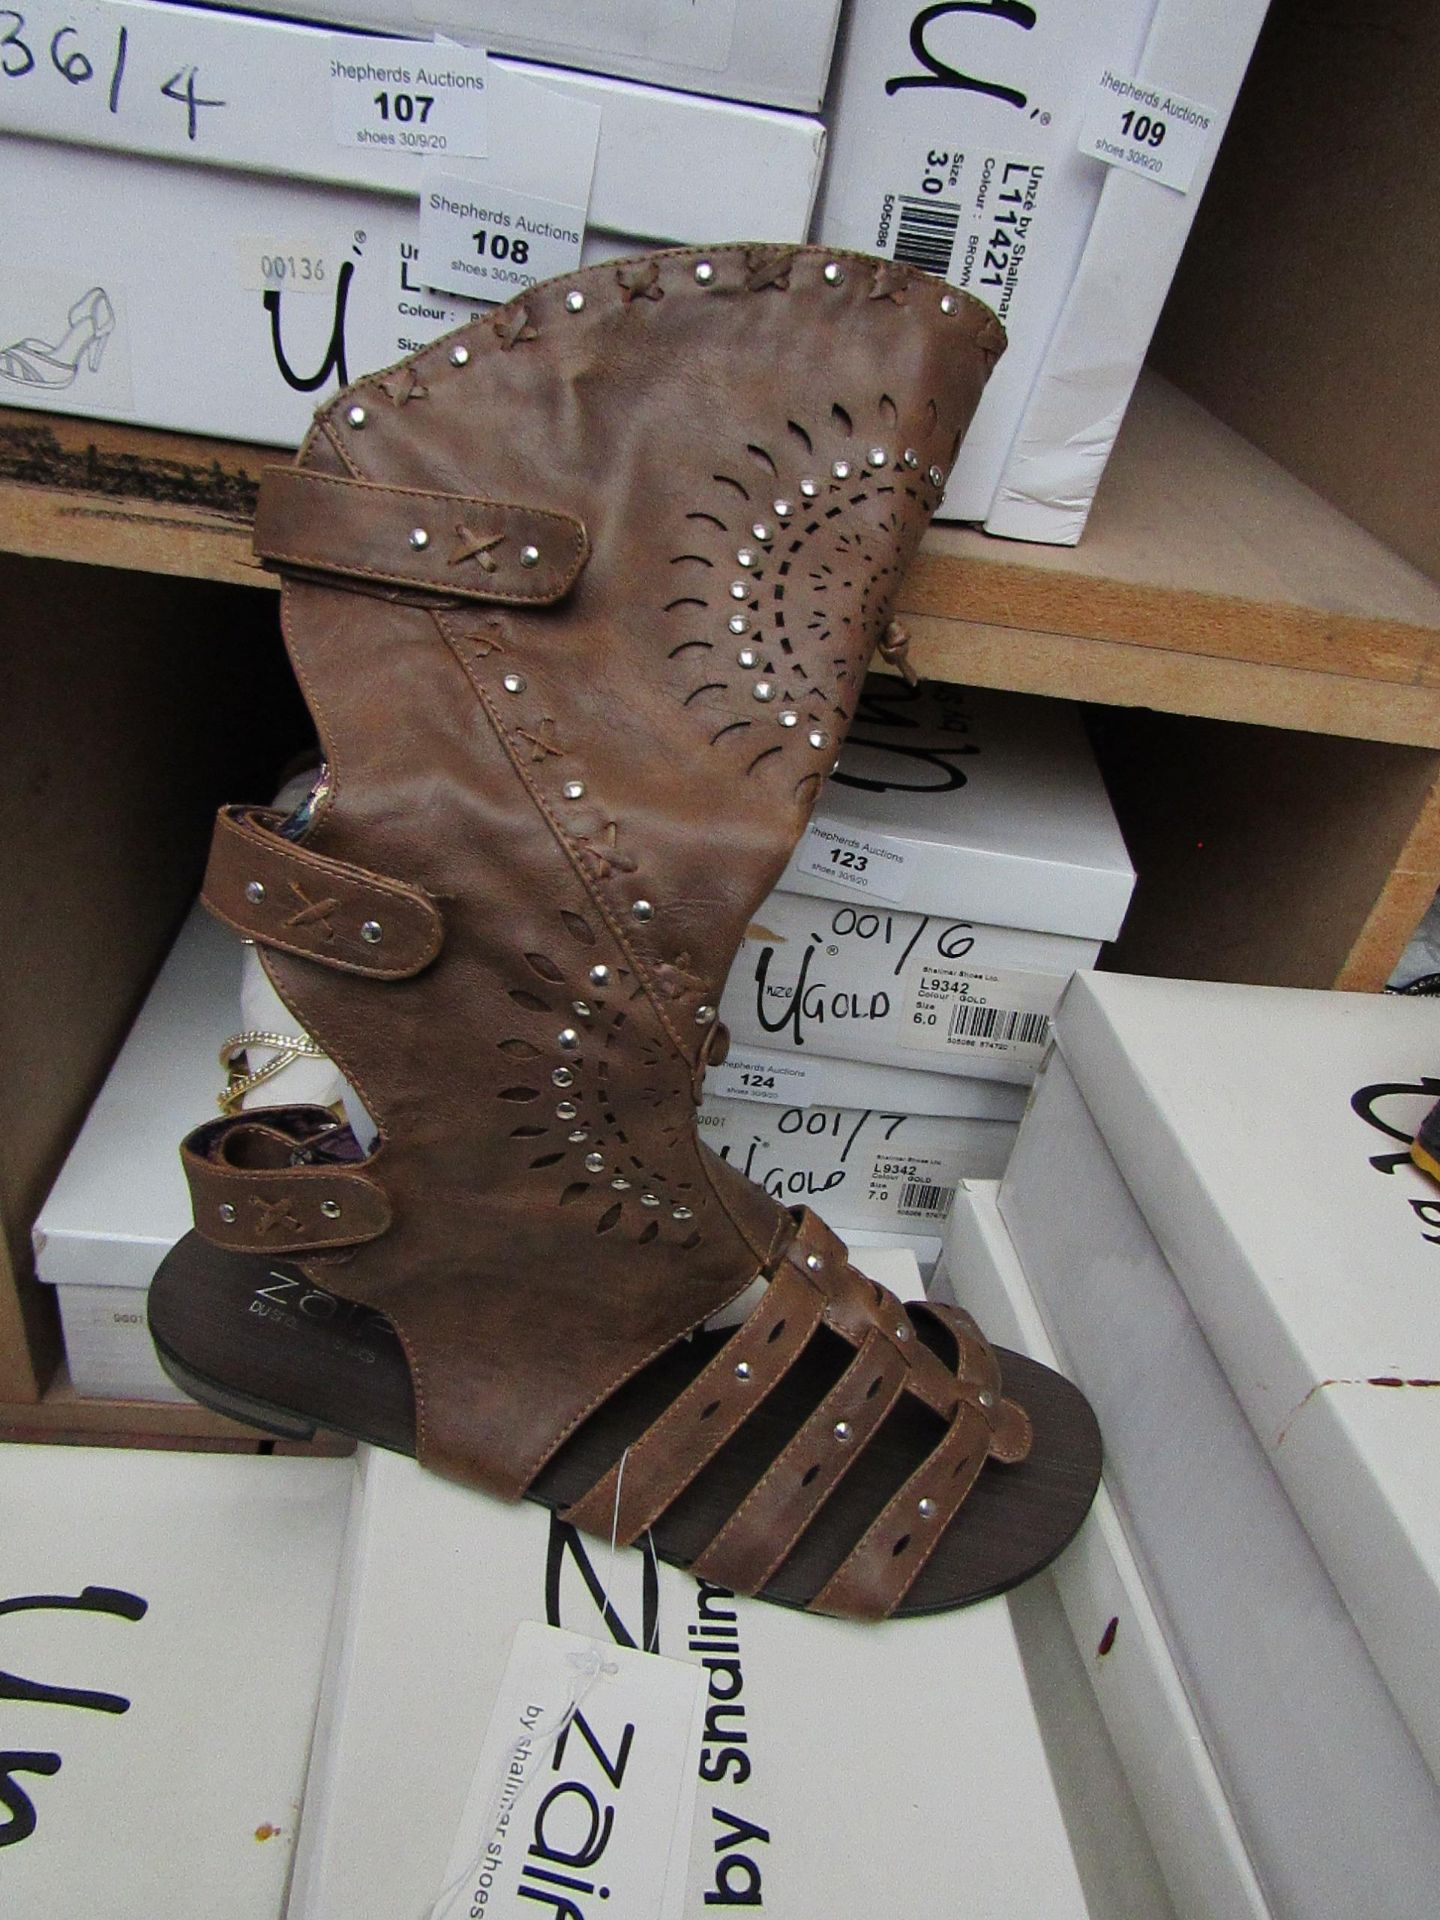 Zaif by Shalamar Shoes Ladies Brown Leather Calf Shoes size 8 new & boxed see image for design